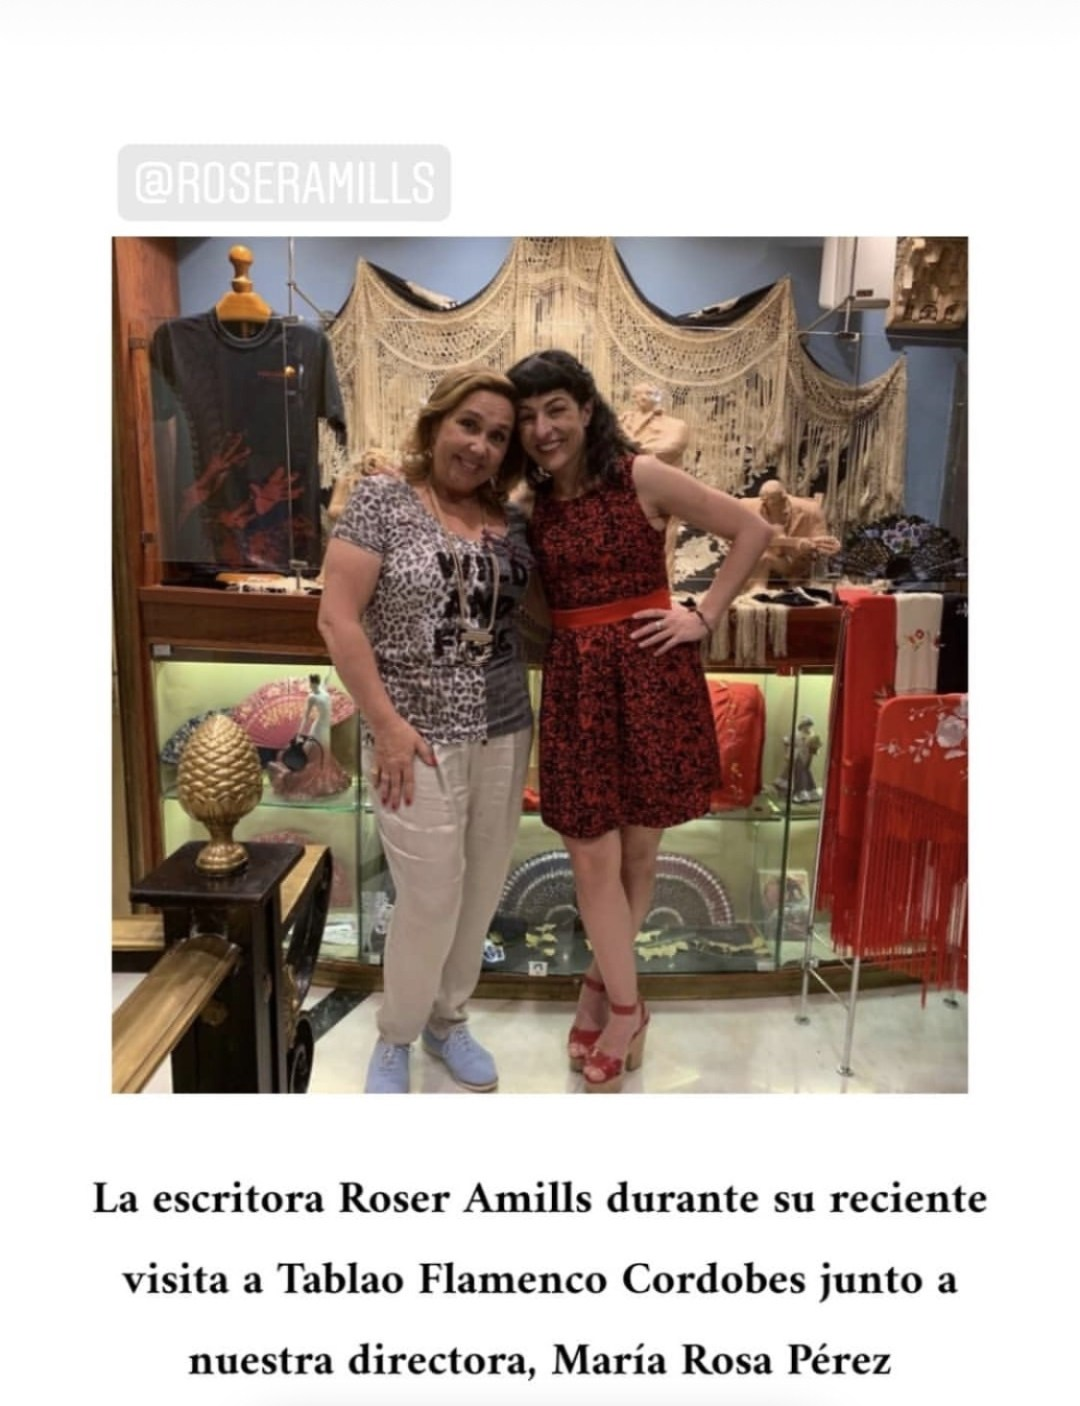 The novelist and collaborator on TV3 and RNE Roser Amills visits Tablao Flamenco Cordobes